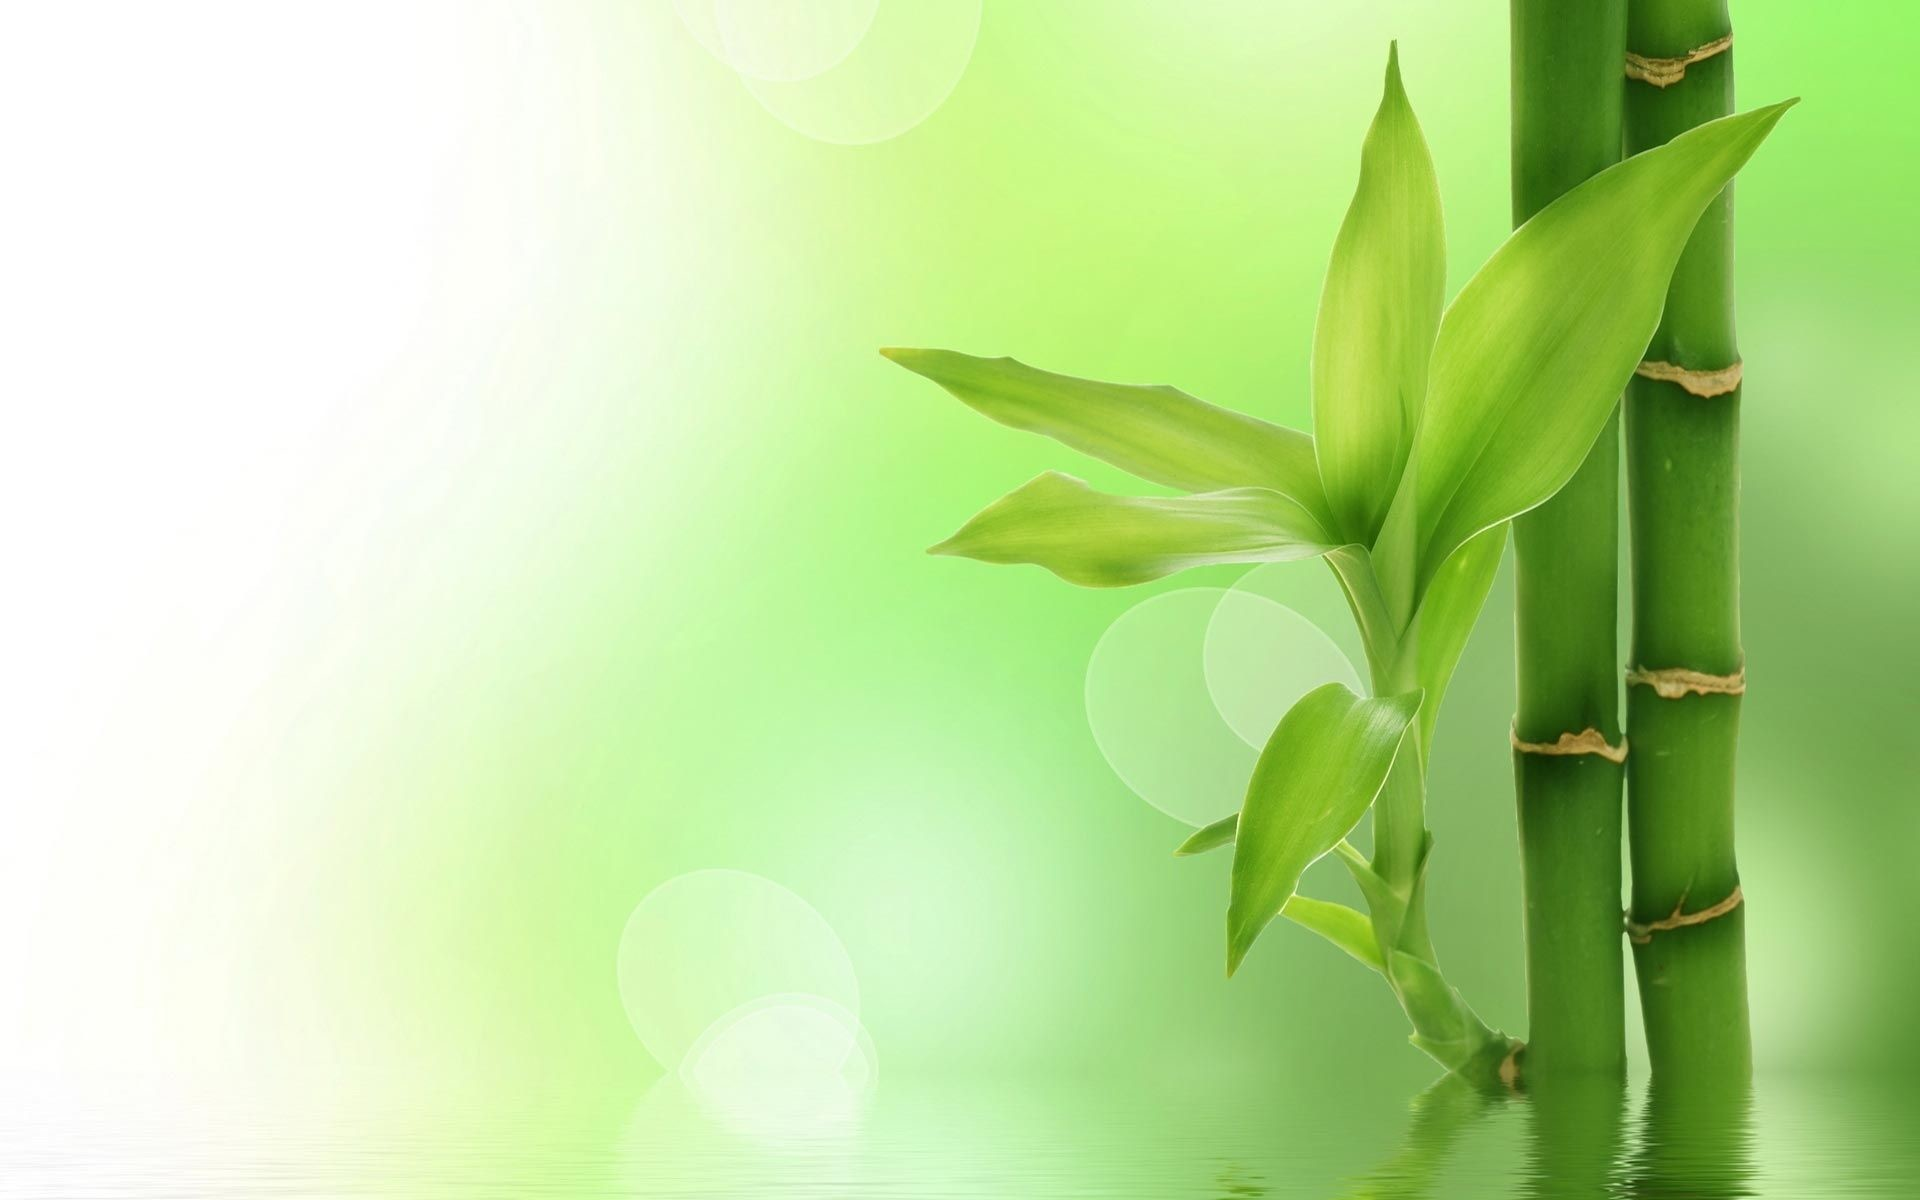 1920x1200 Widescreen Wallpapers of Bamboo › Excellent Wallpapers